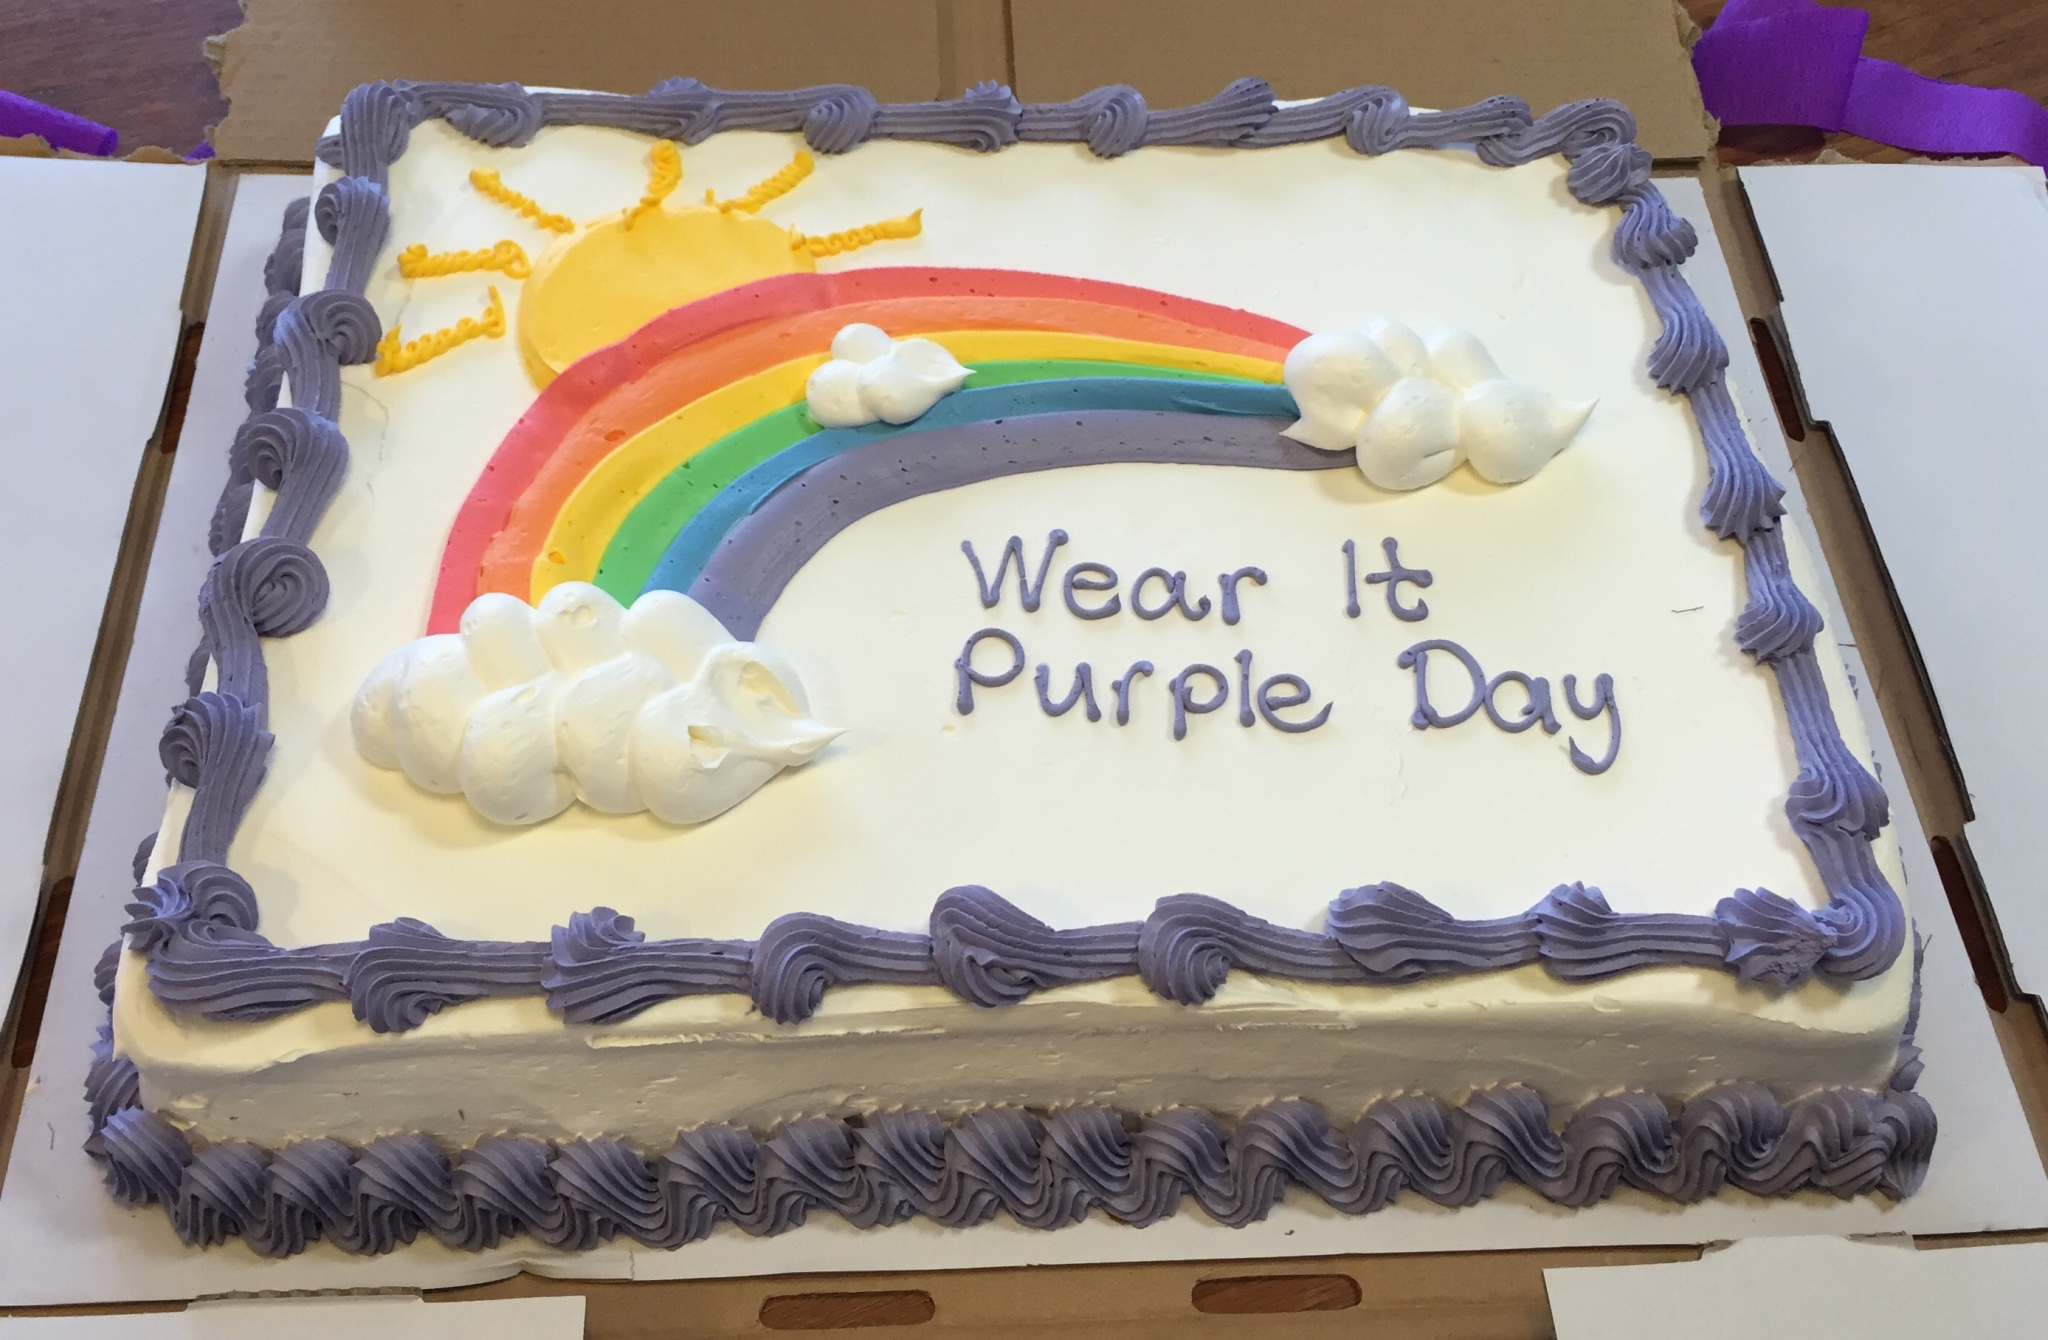 Wear It purple day cake